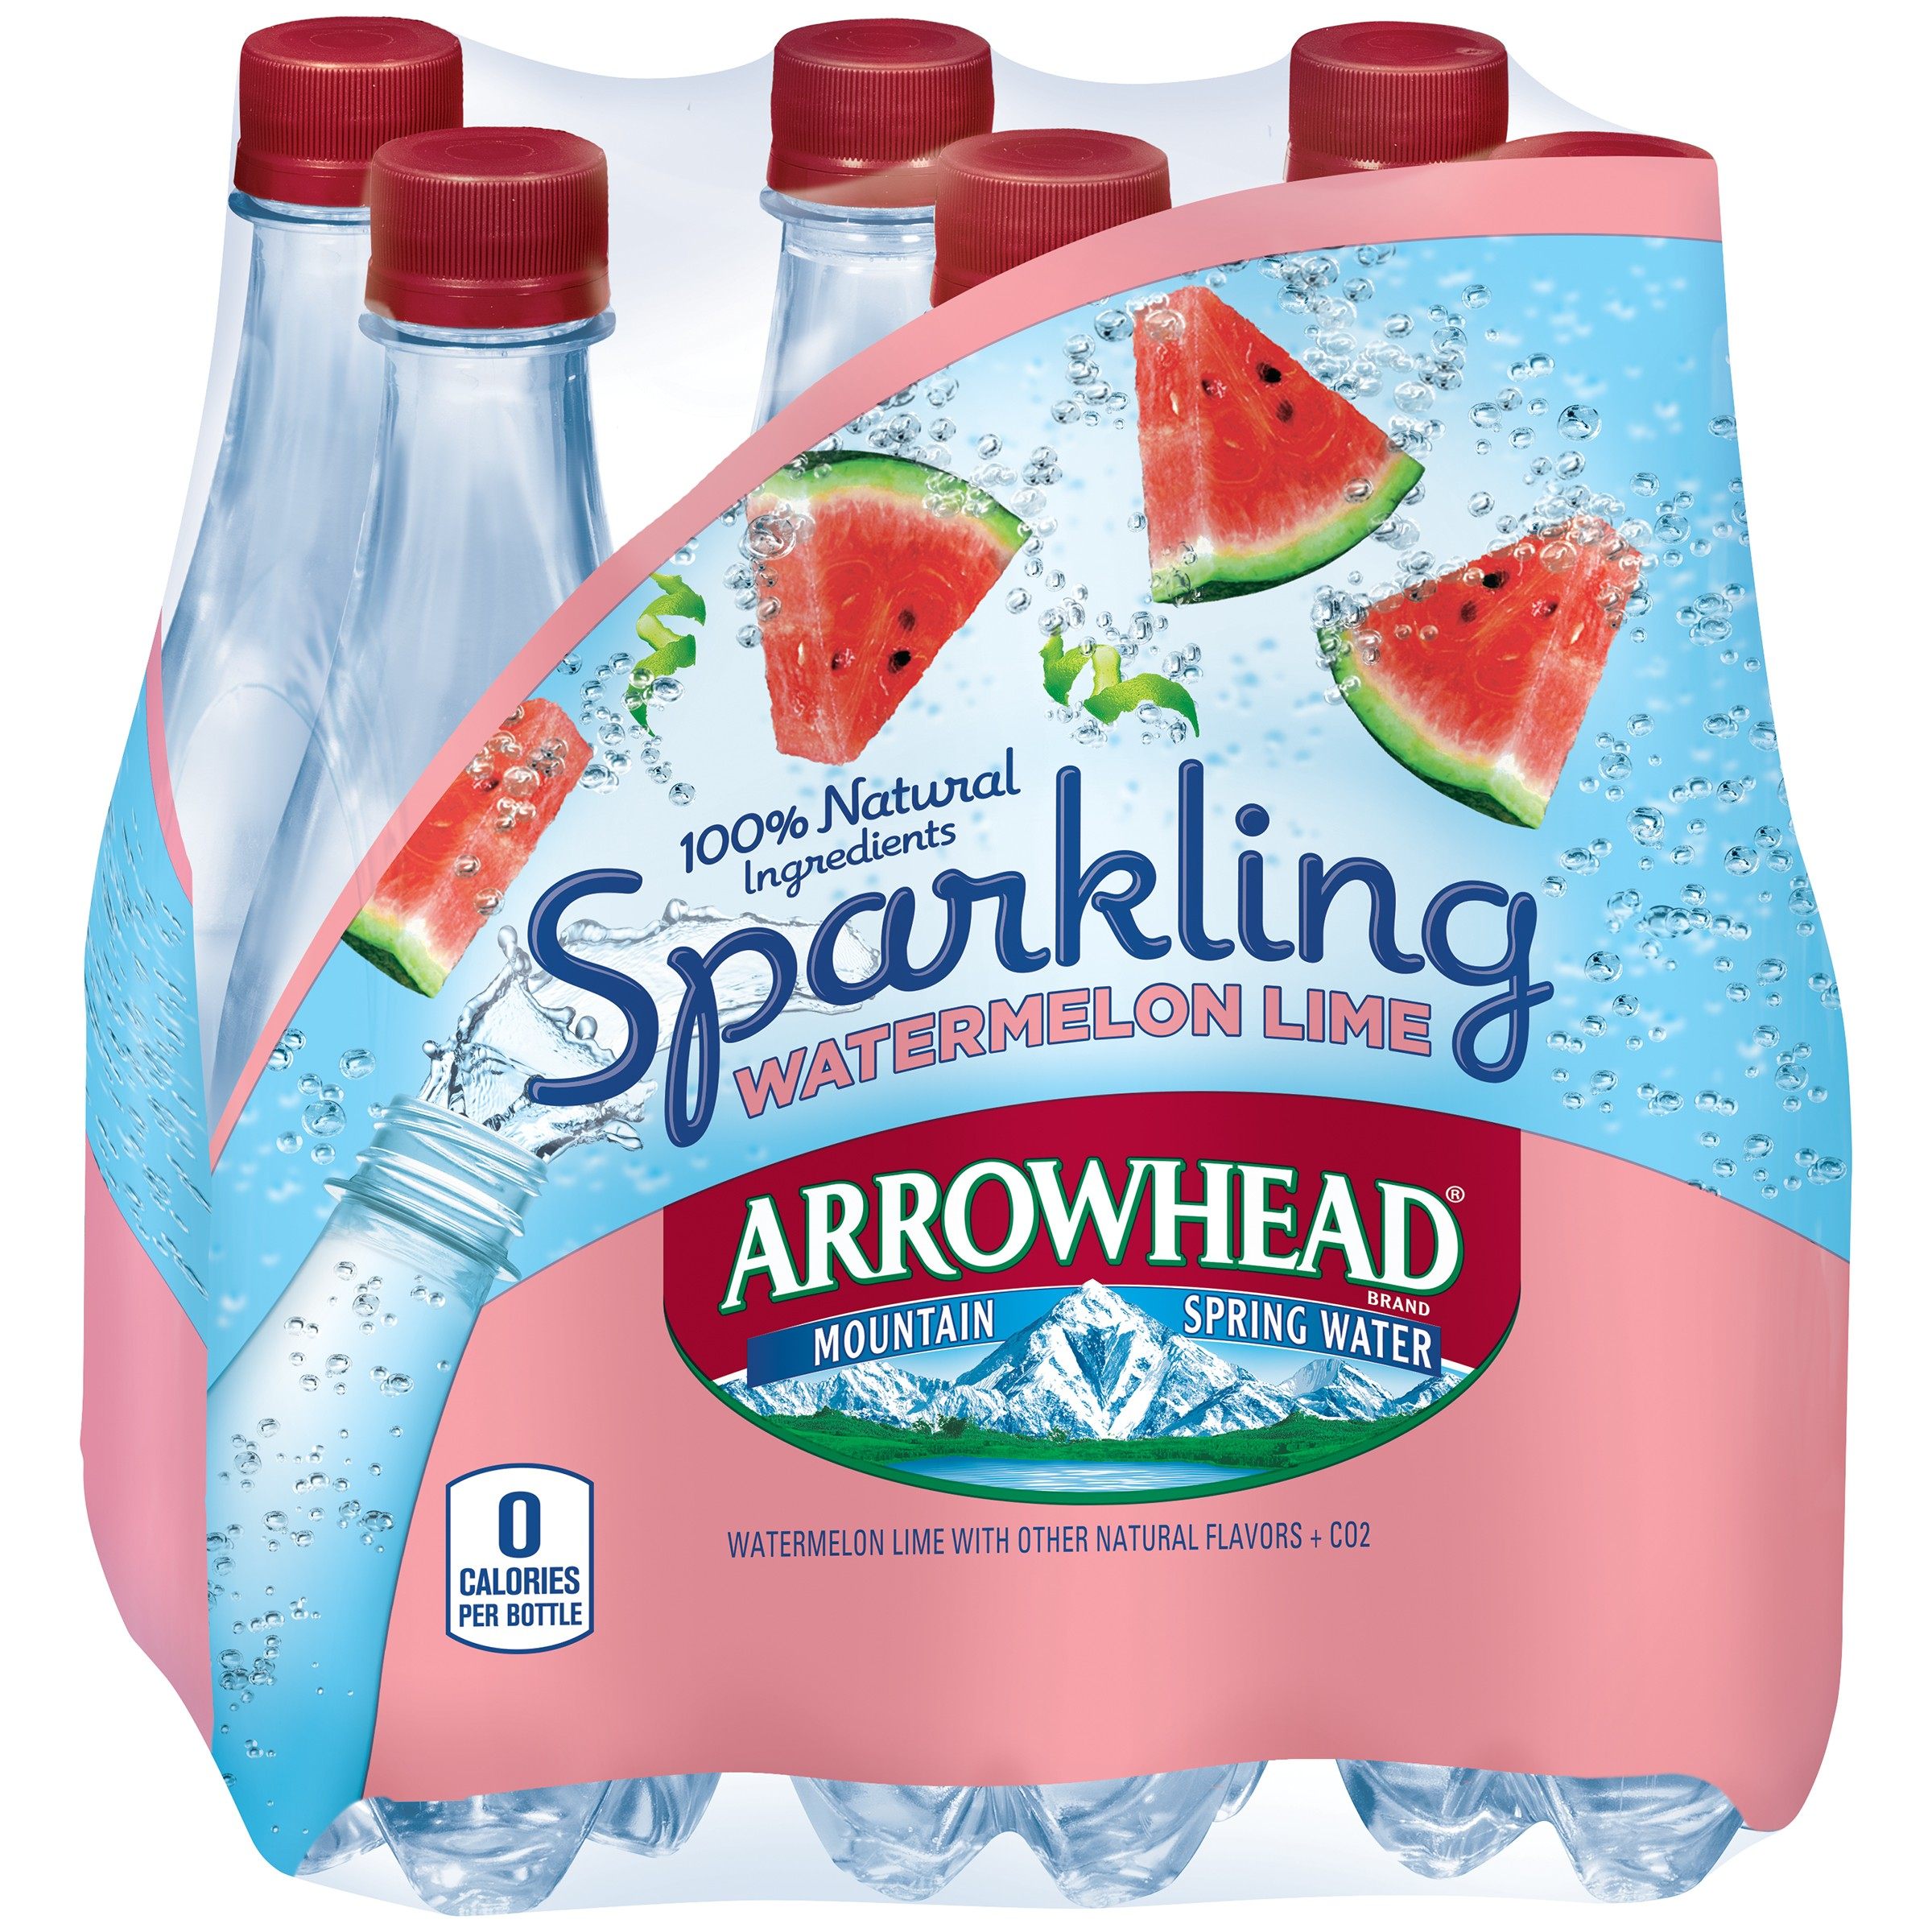 ARROWHEAD Brand Sparkling Mountain Spring Water, Watermelon Lime 16.9-ounce plastic bottles (Pack of 6)